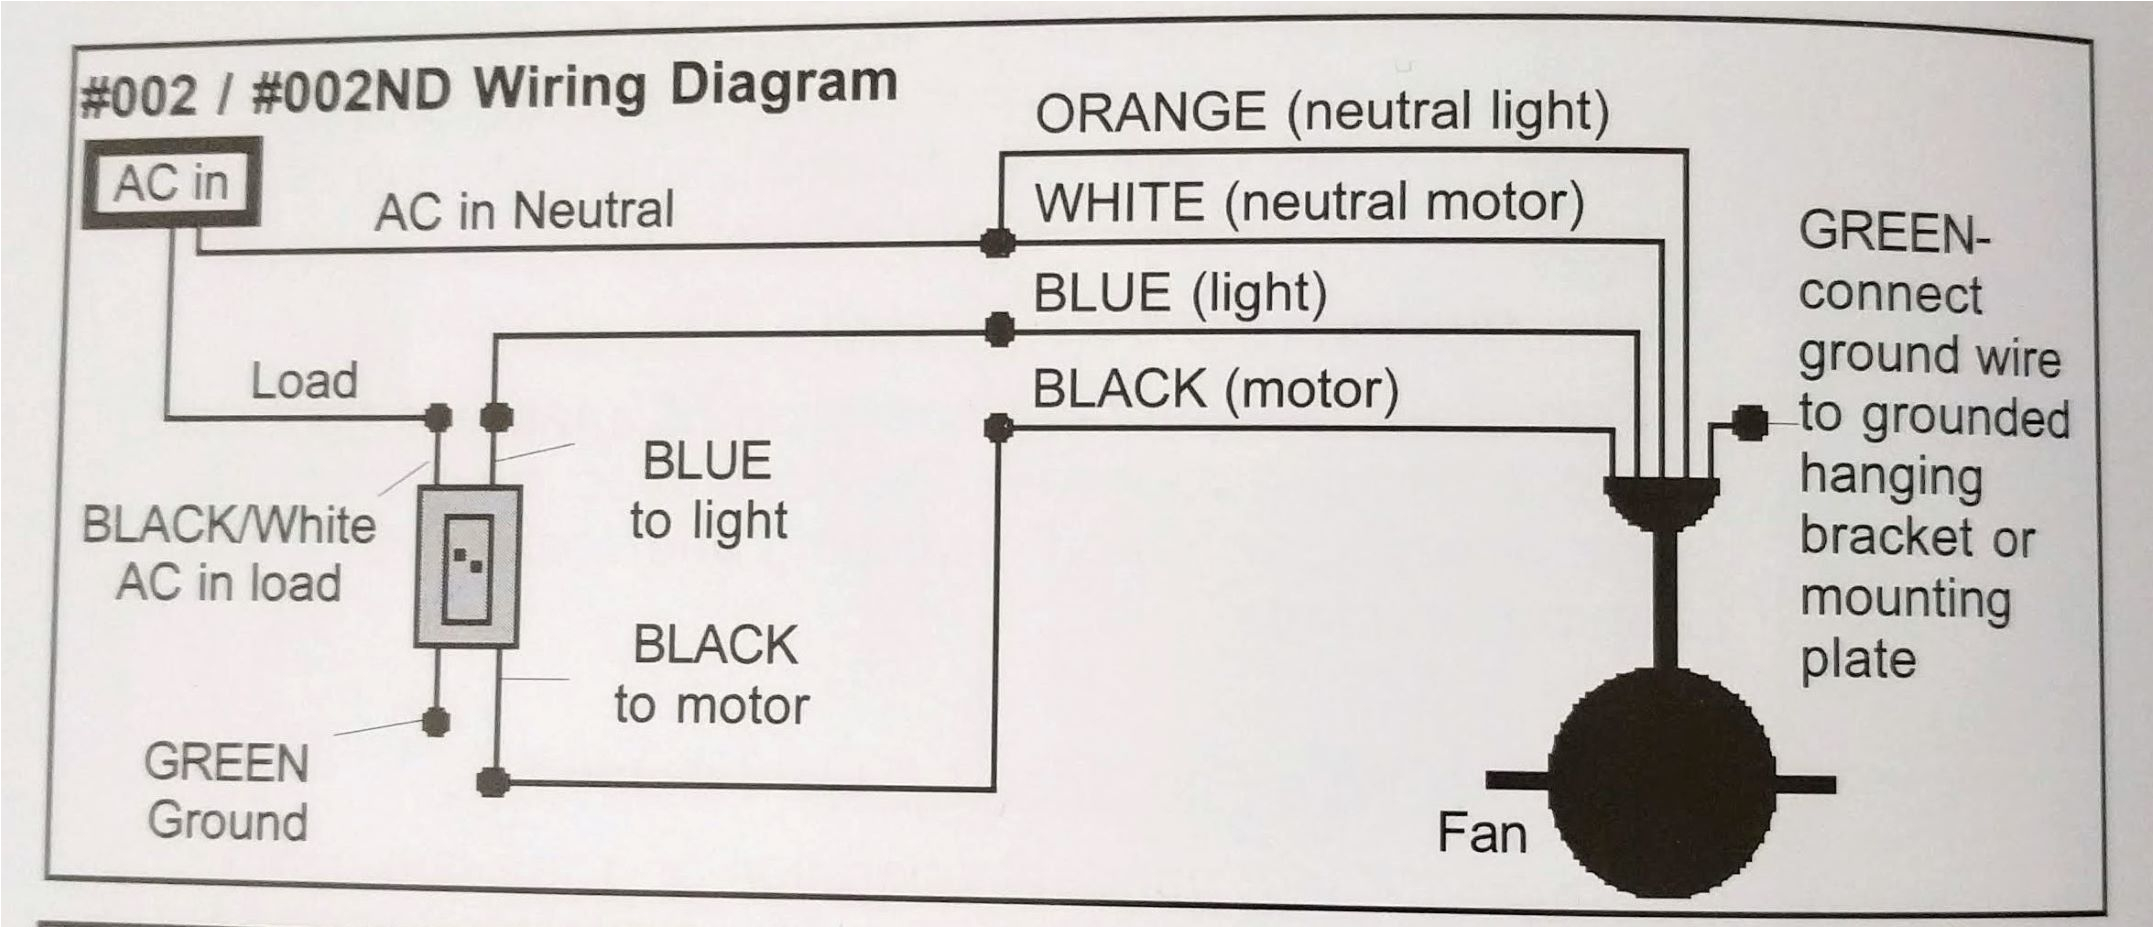 wiring a ceiling fan with black white red green in ceiling box connect red wire ceiling fan connecting red wire ceiling fan